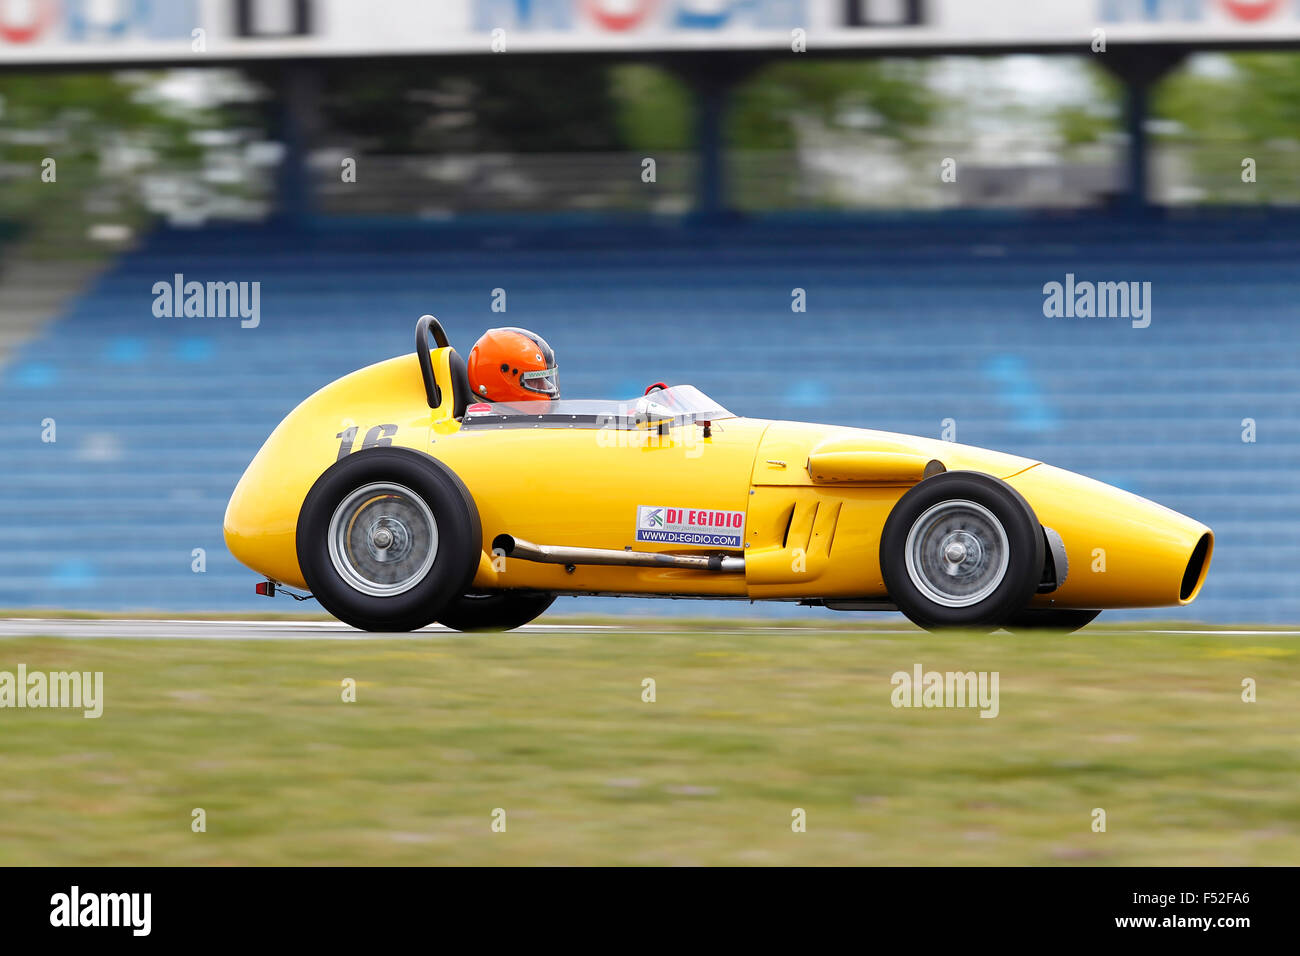 Hockenheim Historic, historical racing car, yellow, moving, panned, right side, year of construction unknown, - Stock Image